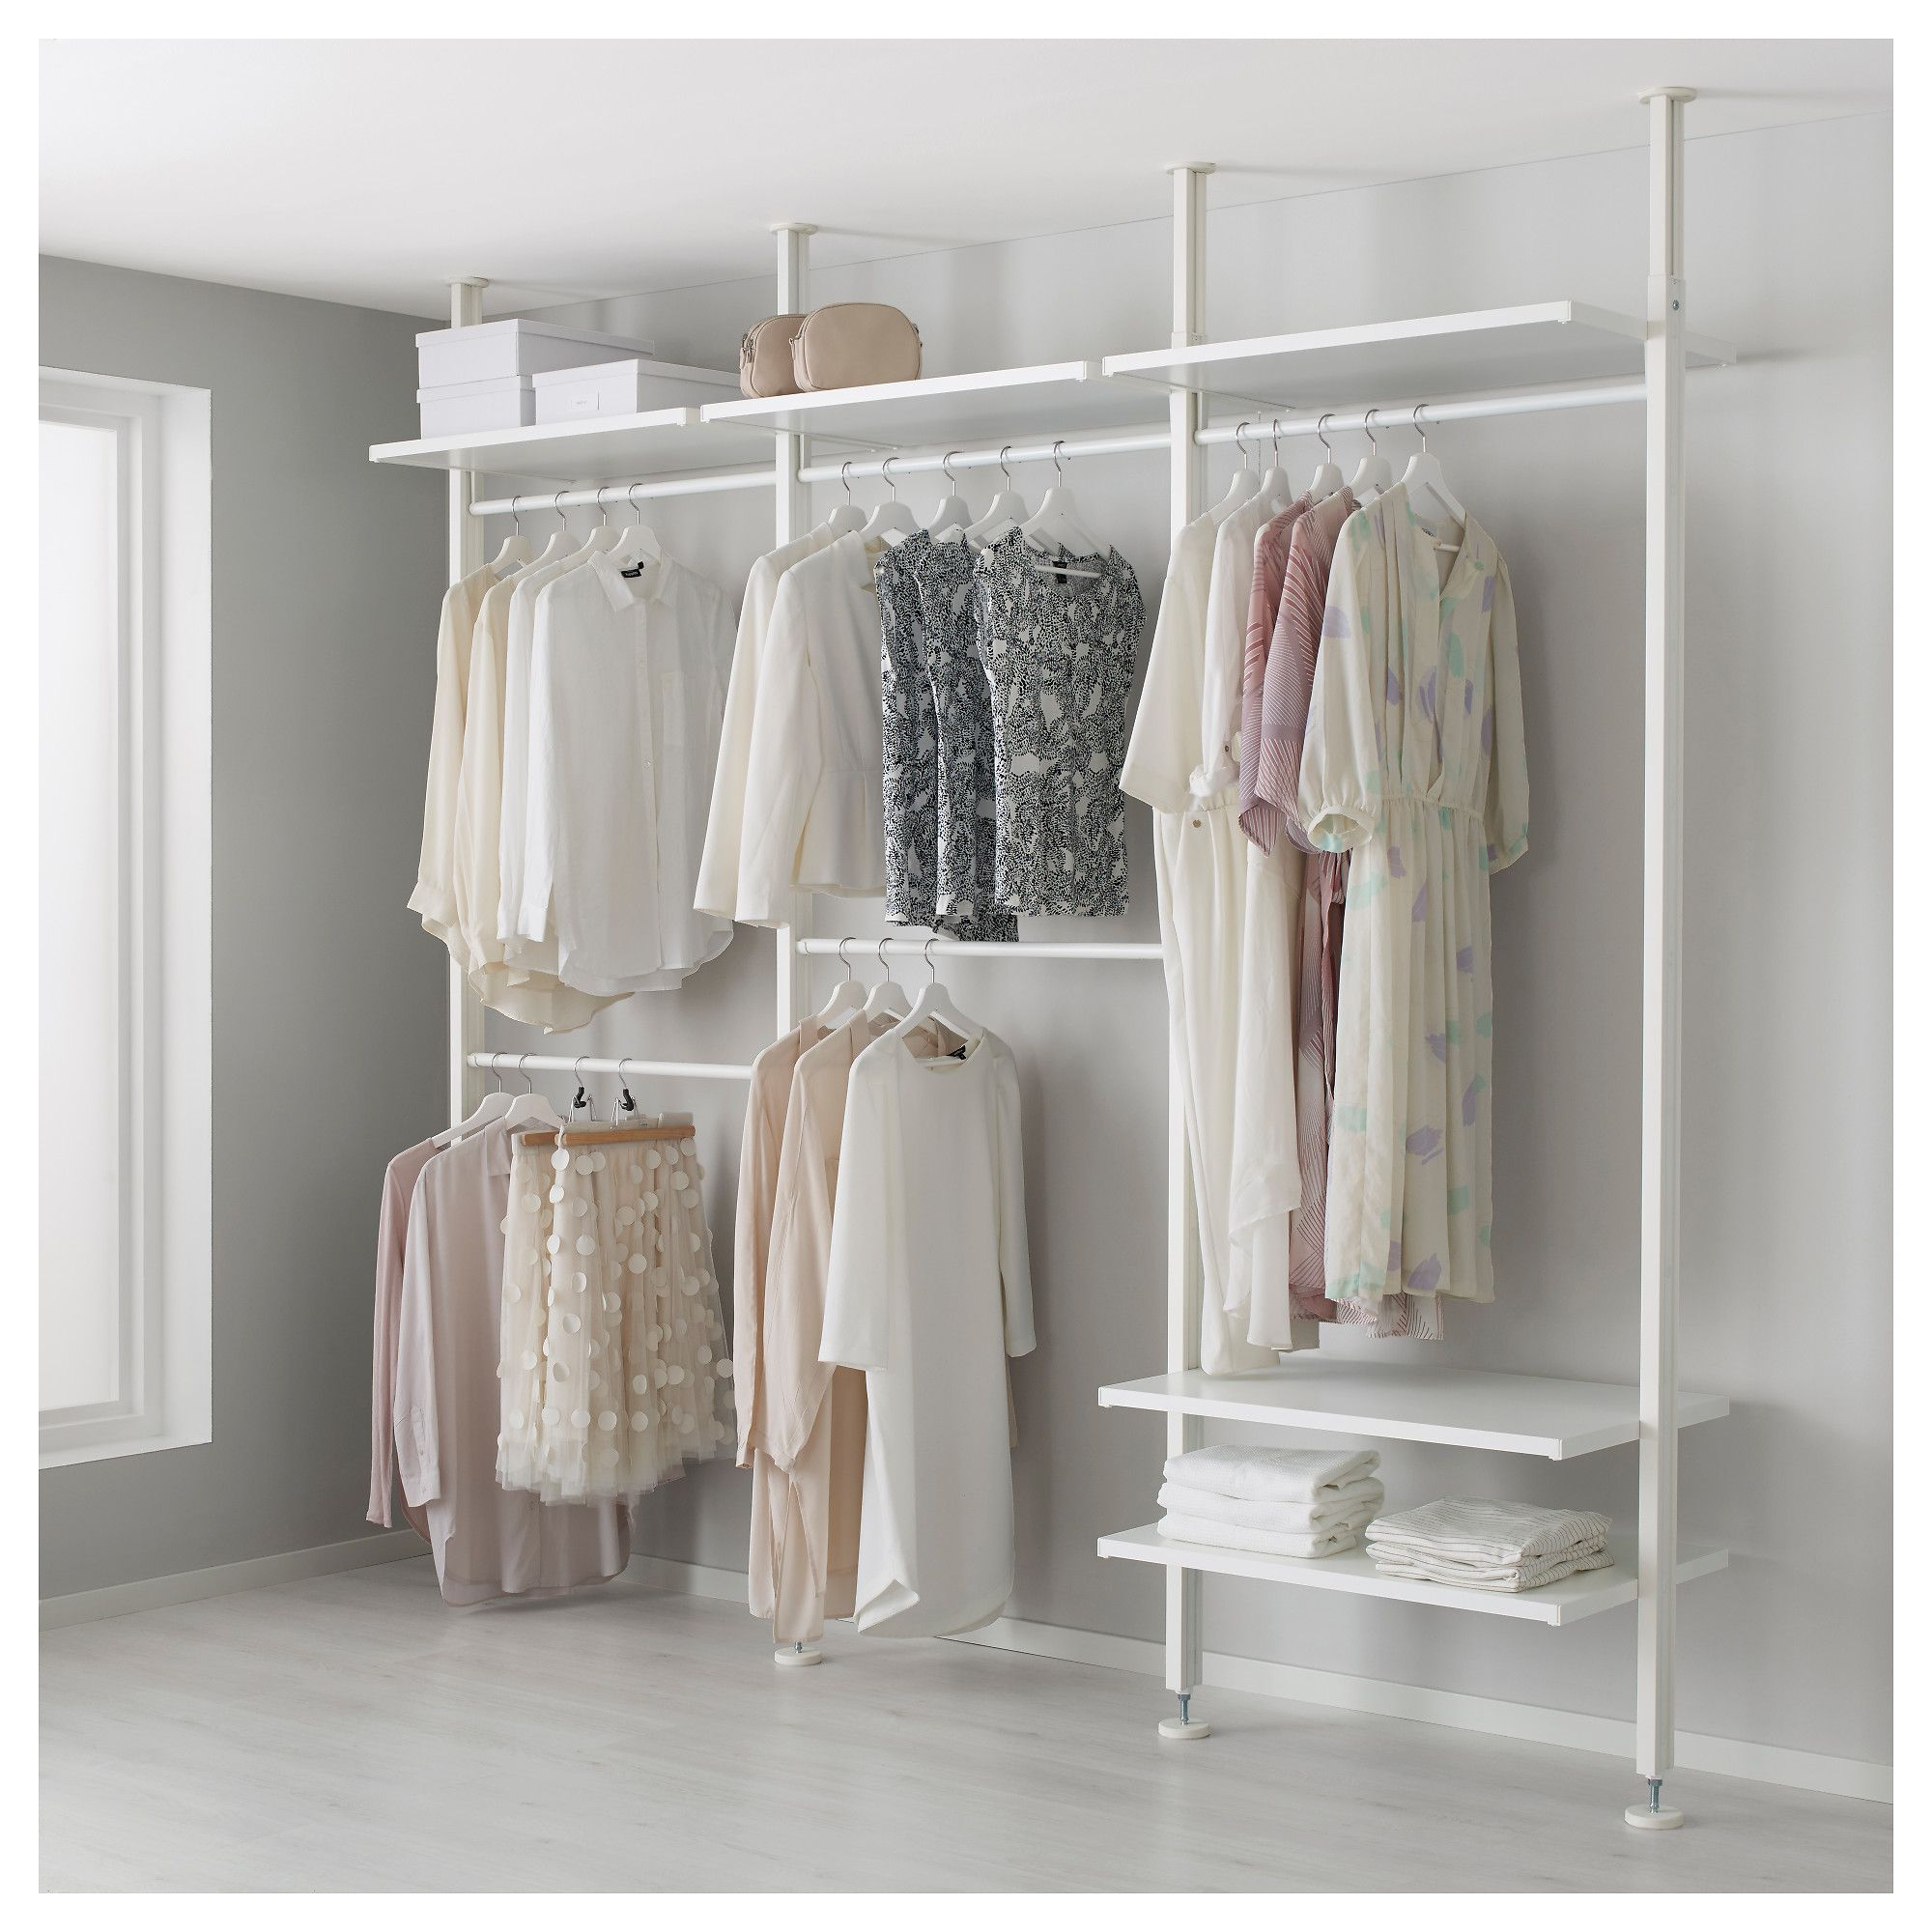 Walk In Wardrobes The Perfect Clothes Solution: ELVARLI 3 Sections White